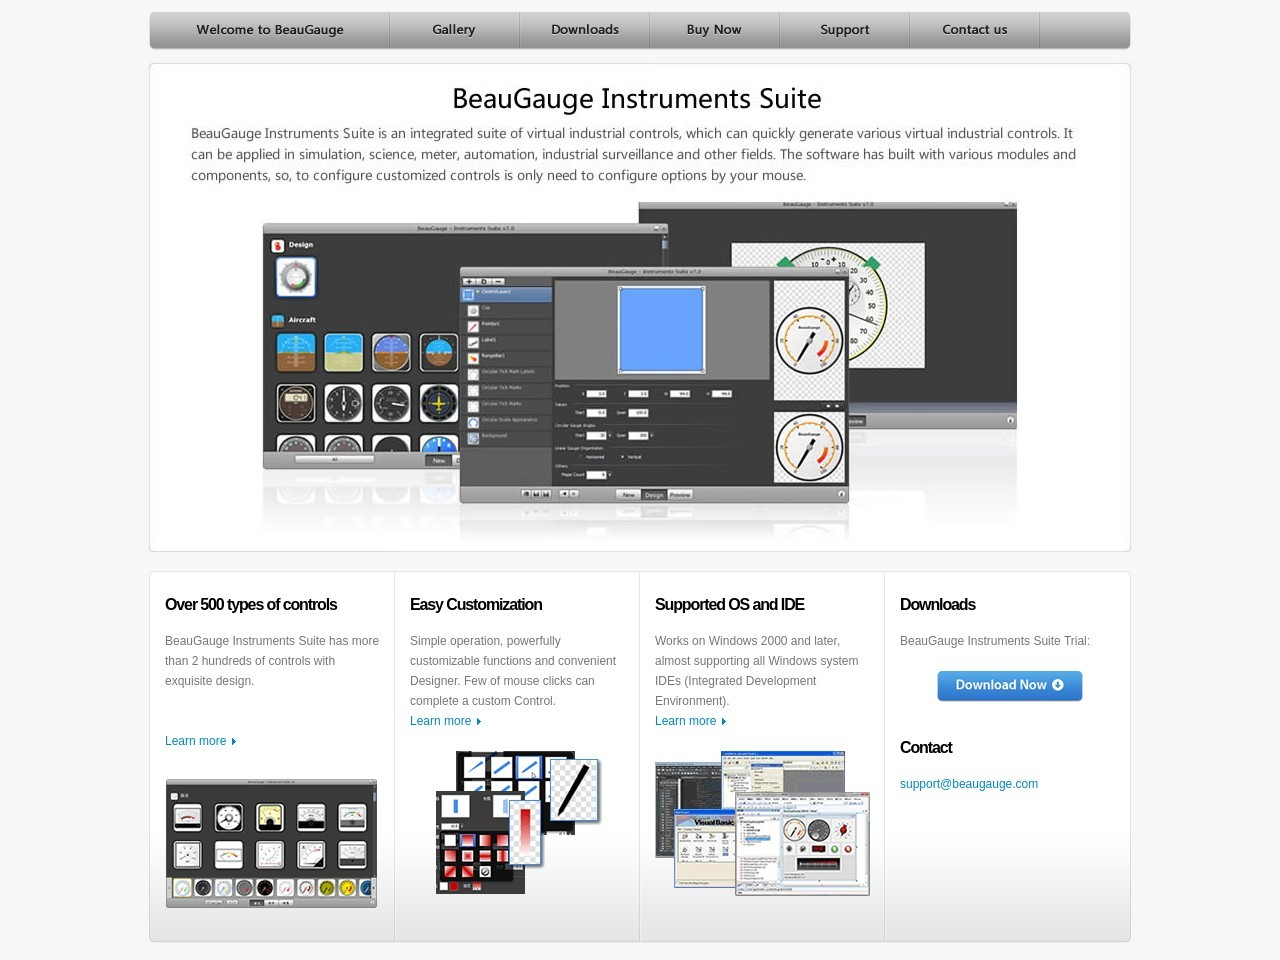 Special 15% BeauGauge Instruments Suite 7.x (3 Developer License) Voucher Sale